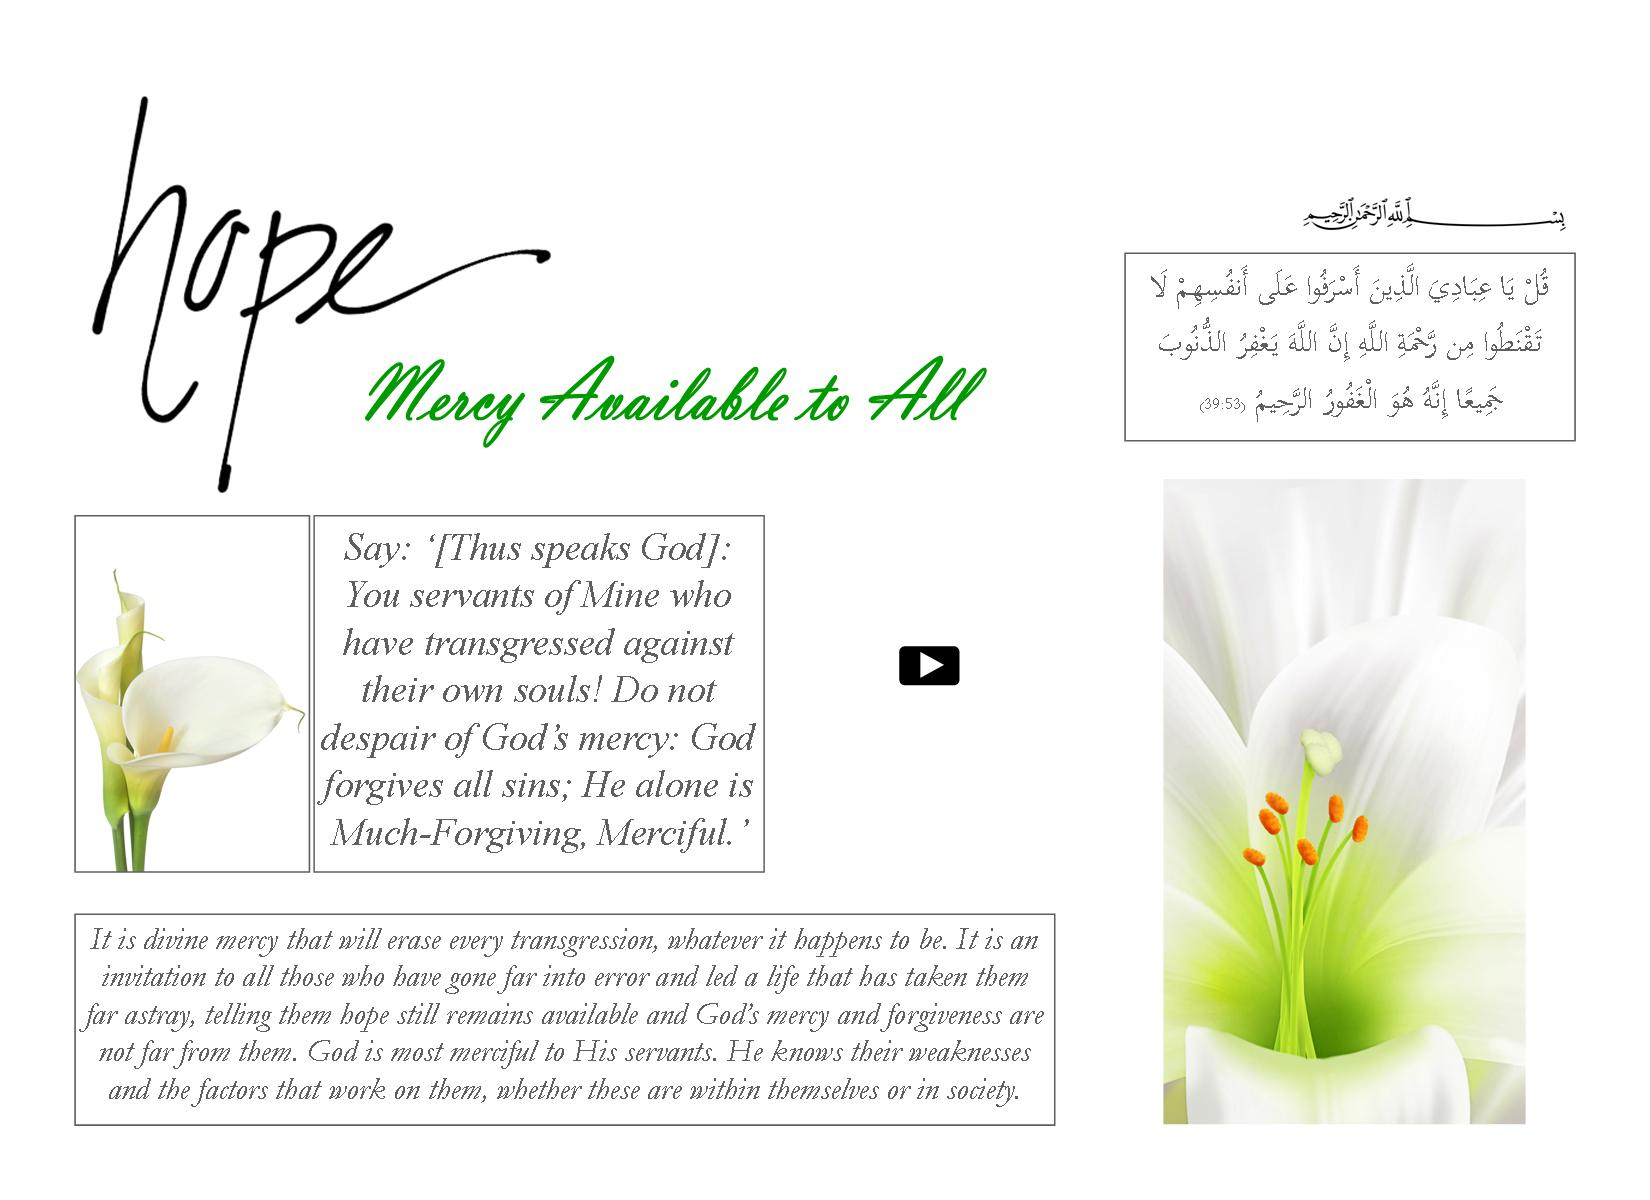 Hope - Mercy Available to All